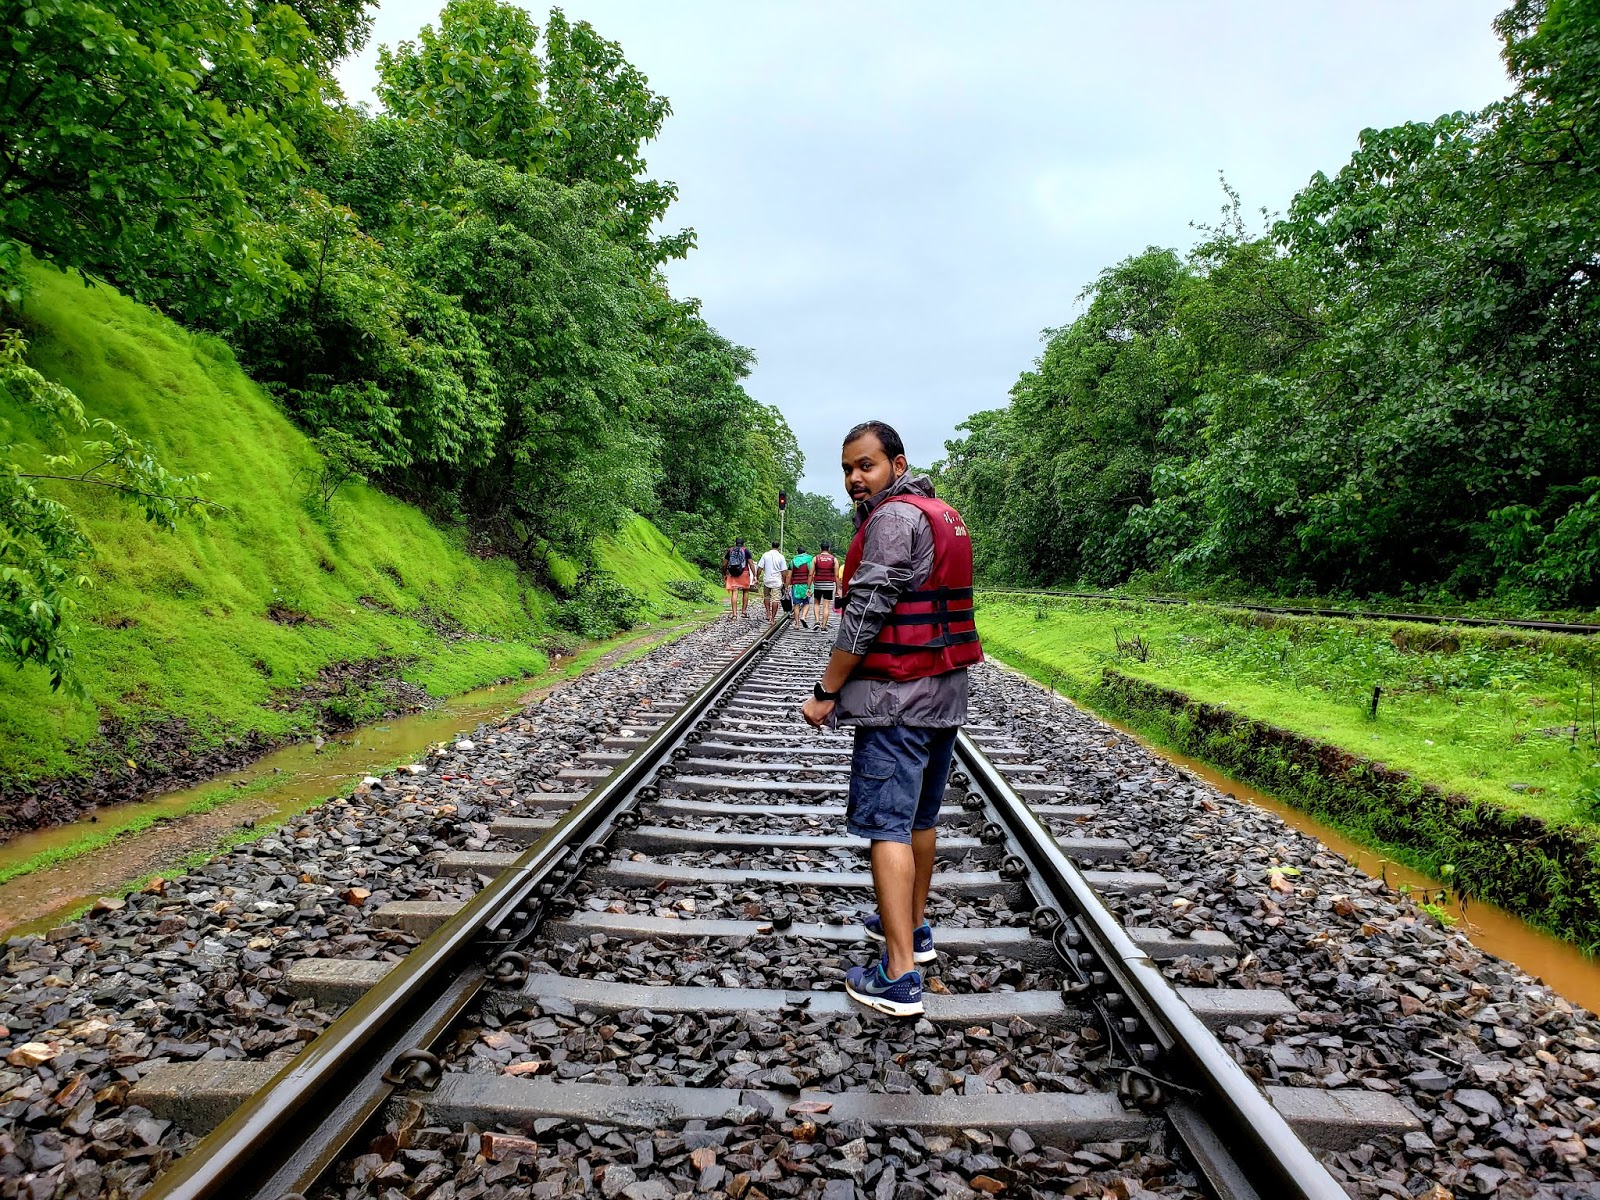 Track from Colem Station to Dudhsagar falls